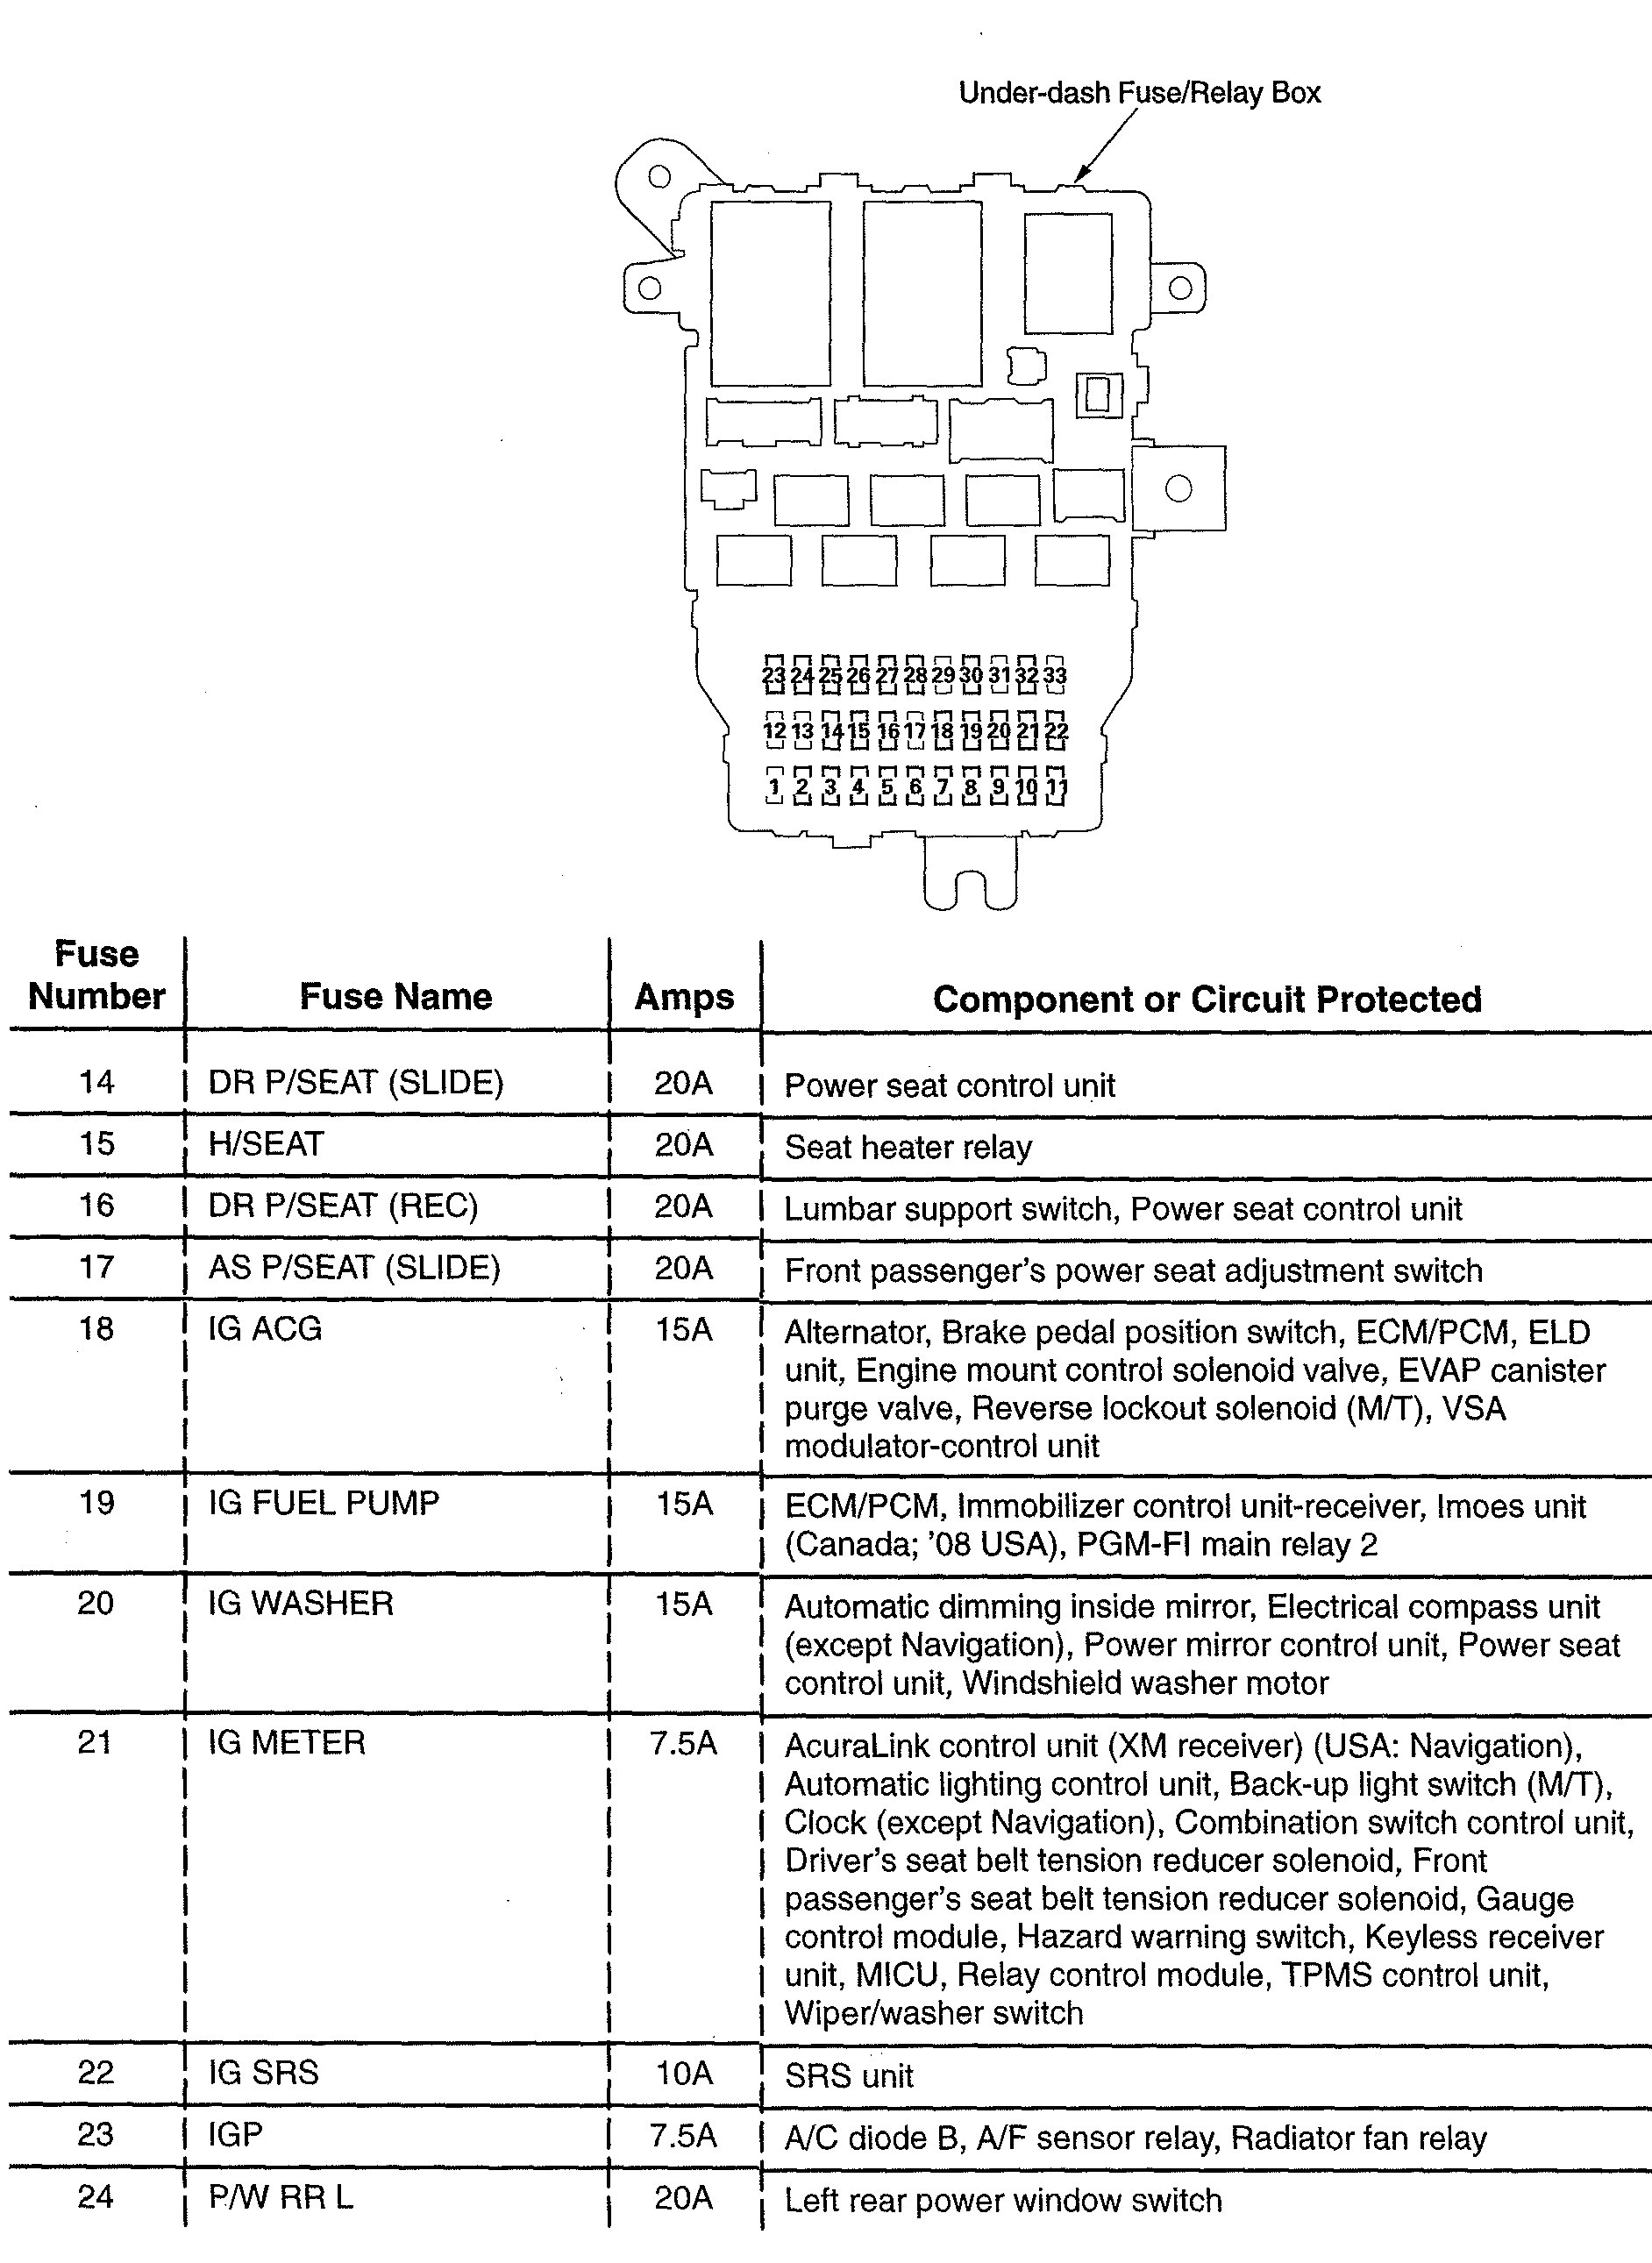 acura tl wiring diagram fuse panel 2 2008 acura tl (2008) wiring diagrams fuse panel carknowledge acura tl wiring diagram at edmiracle.co